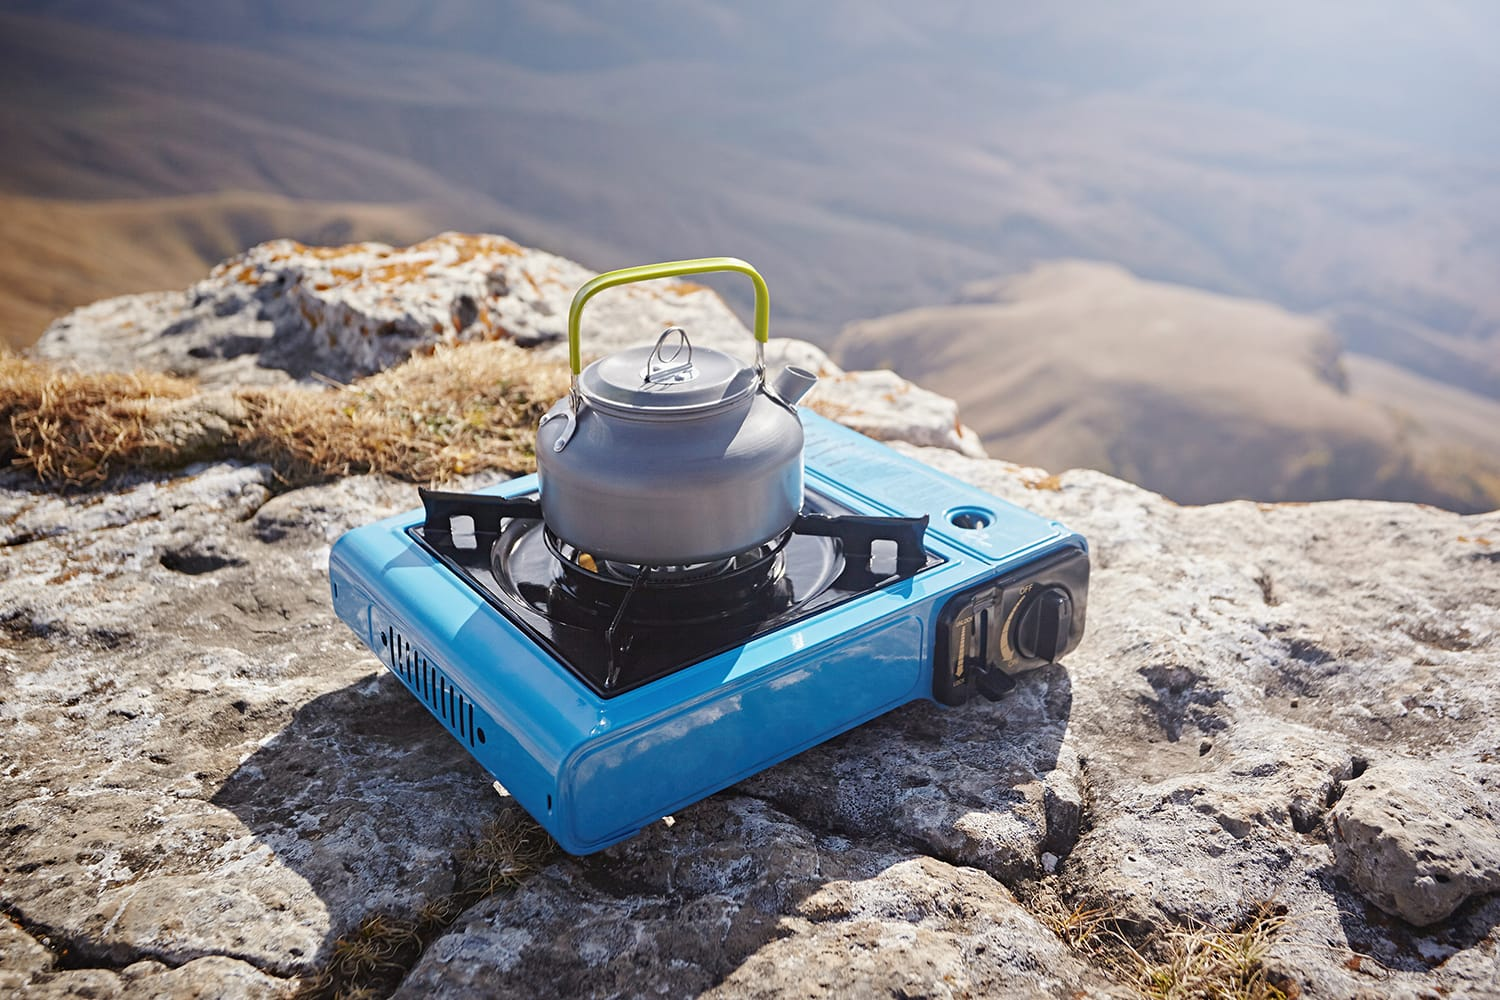 How to Use a Camping Stove How to Use a Camping Stove